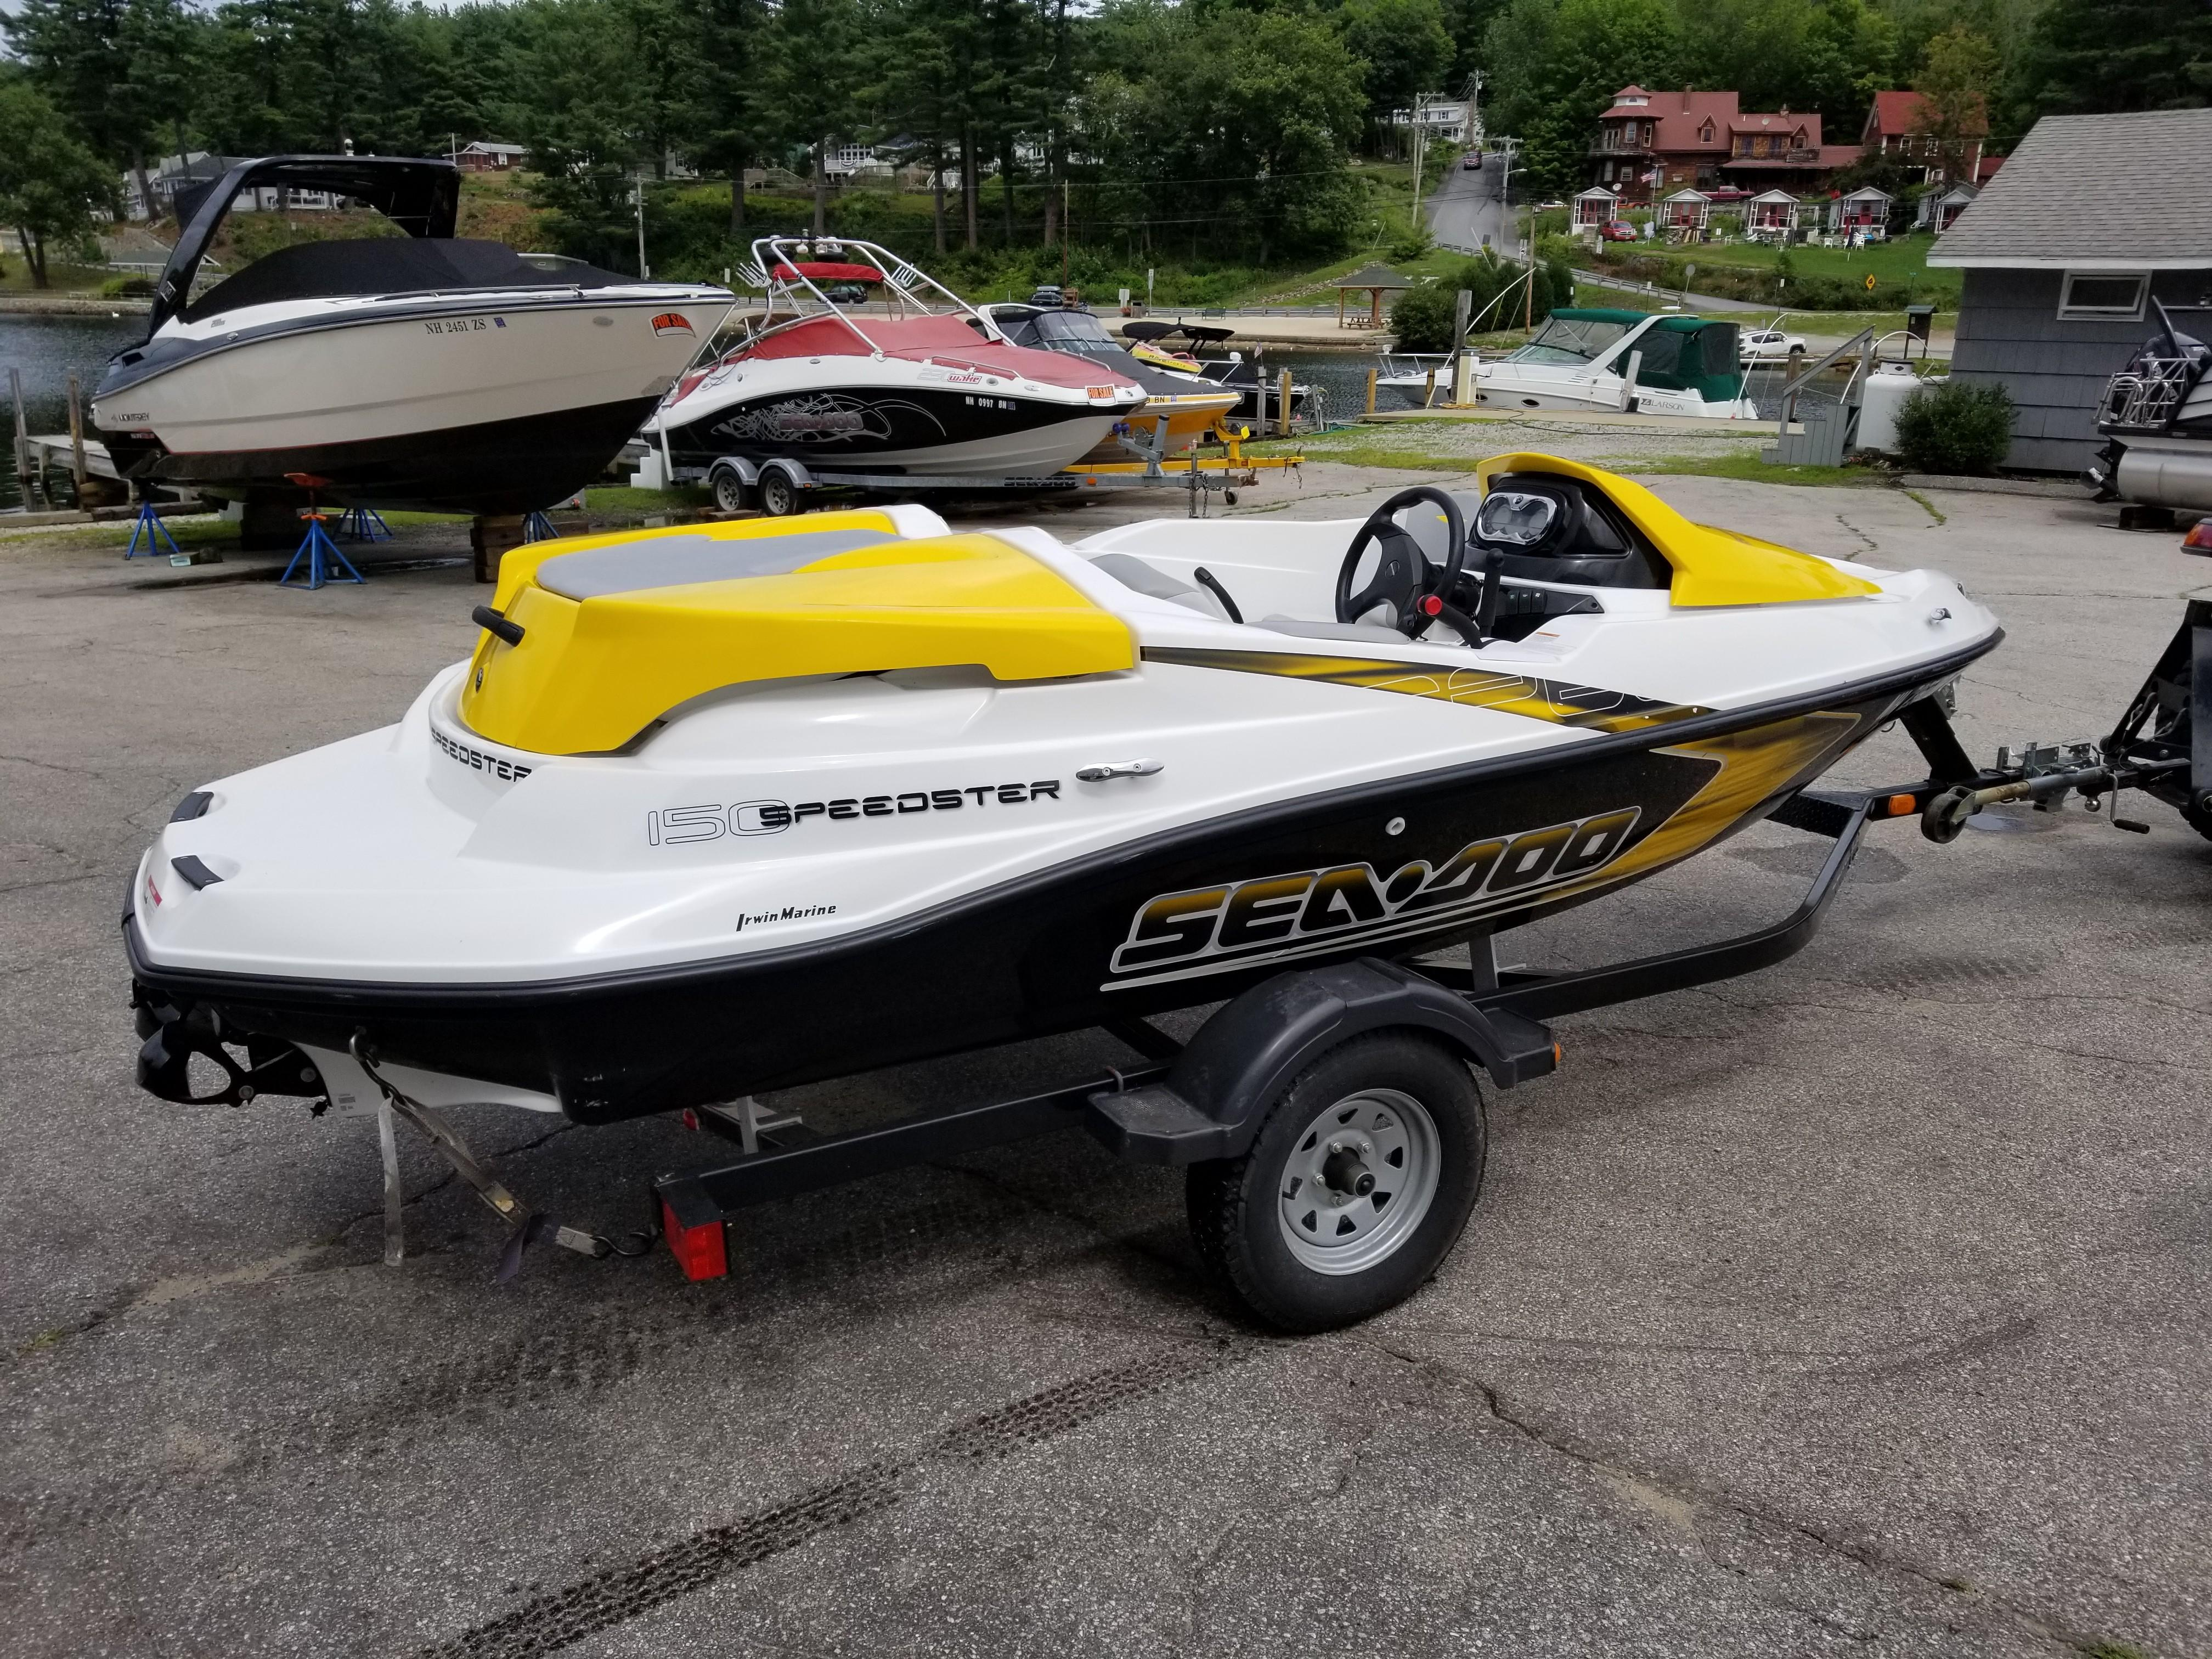 2009 Sea Doo Sportboat boat for sale, model of the boat is 150 Speedster & Image # 2 of 16